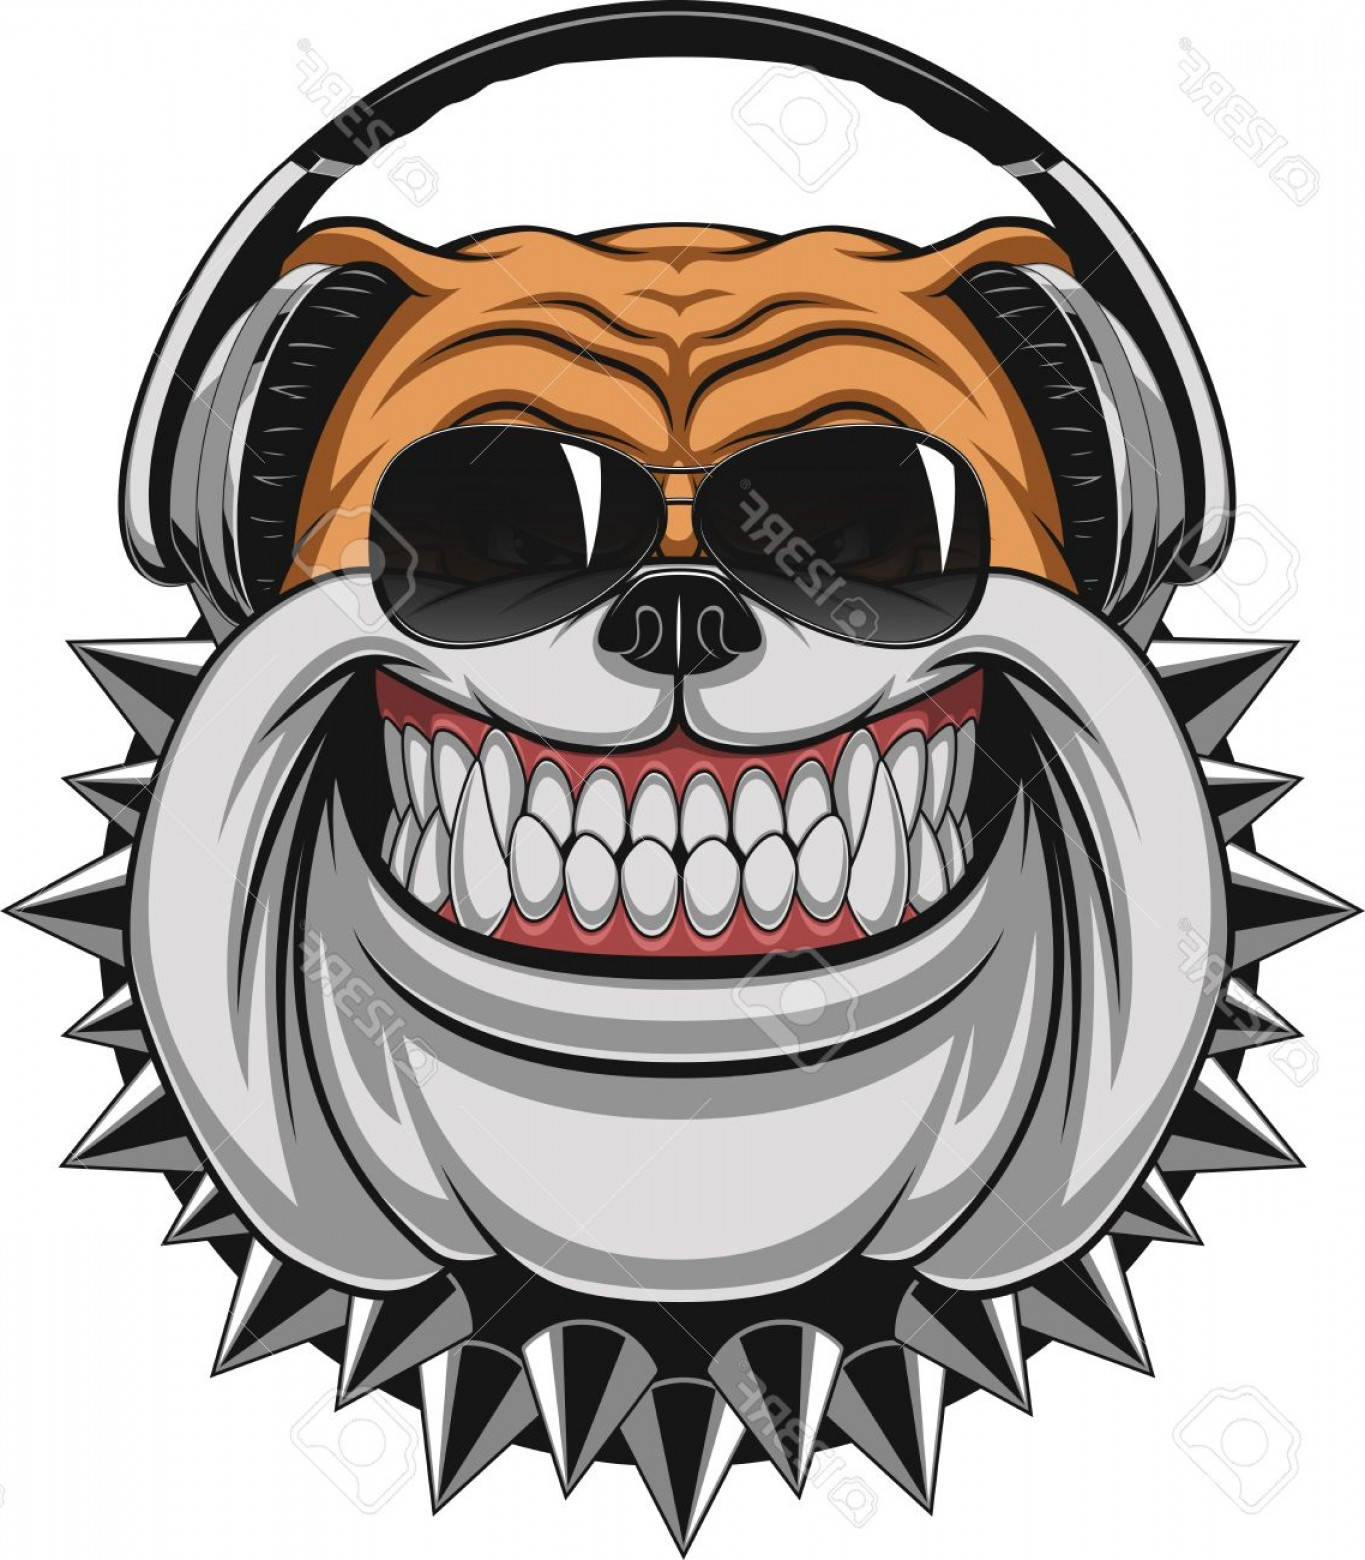 Vector Smiling Bulldog: Photostock Vector Vector Illustration Of Funny Bulldog Wearing Headphones Listening To Music Smiling